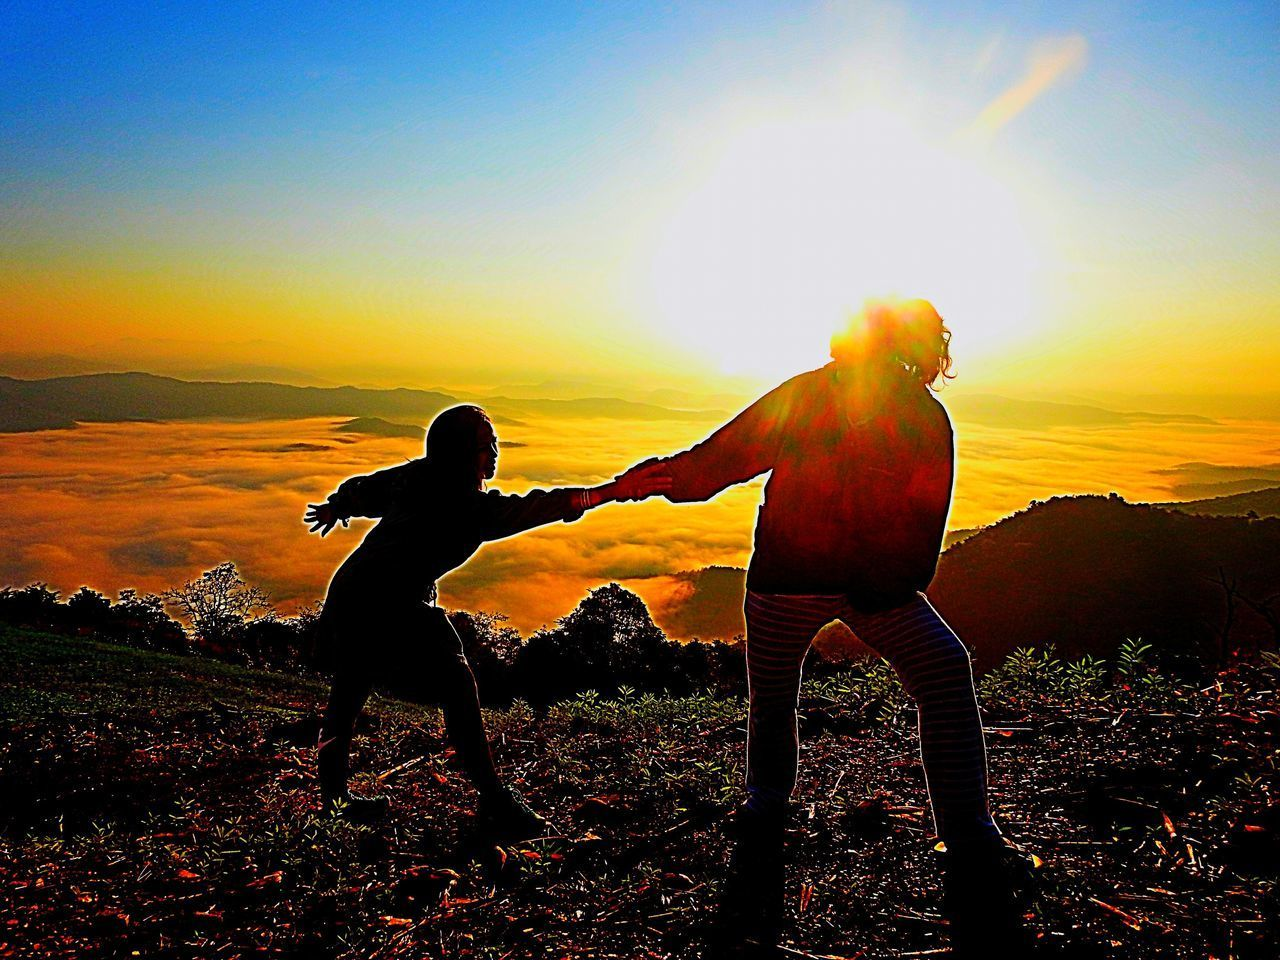 sunset, sky, real people, leisure activity, two people, lifestyles, men, togetherness, standing, land, beauty in nature, silhouette, nature, orange color, full length, field, sunlight, people, friendship, child, outdoors, lens flare, human arm